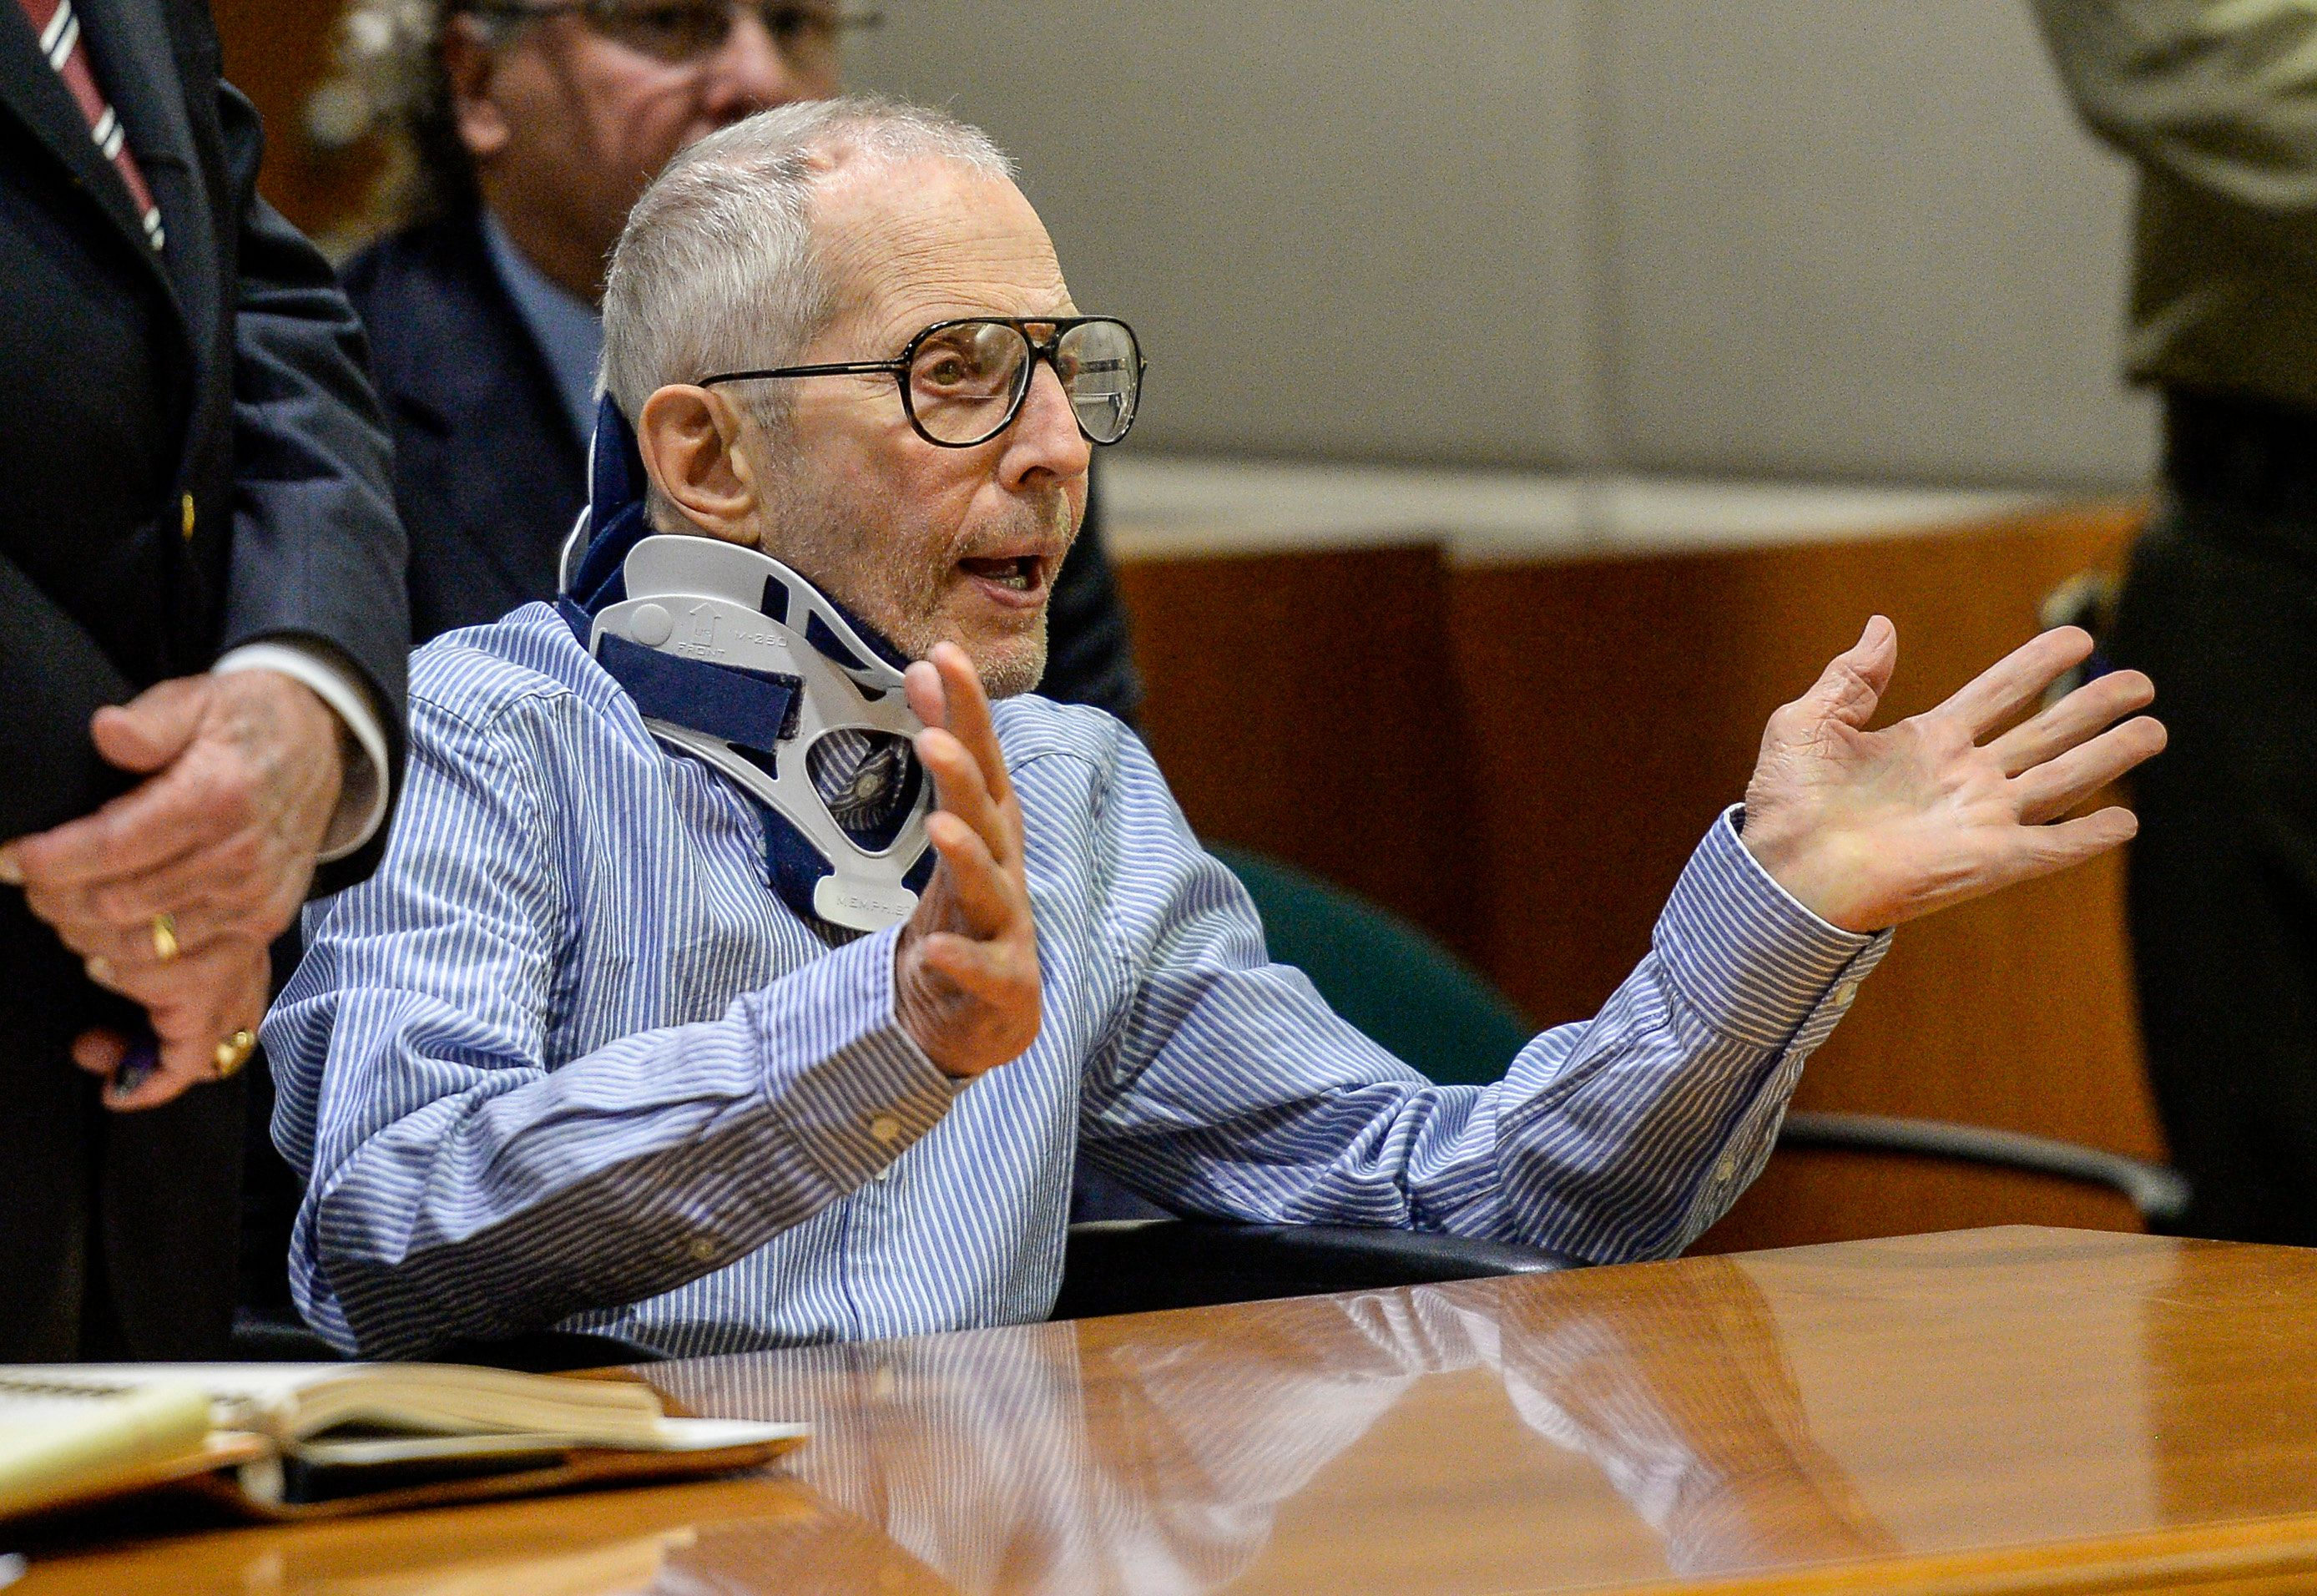 LOS ANGELES, CA - NOVEMBER 07: Real Estate Heir Robert Durst appears in the Airport Branch of the Los Angeles County Superior Court on November 7, 2016 in Los Angeles, California. Durst has pleaded not guilty to murder in the death of a friend Susan Berman in 2000. (Photo by Pool/Getty Images)